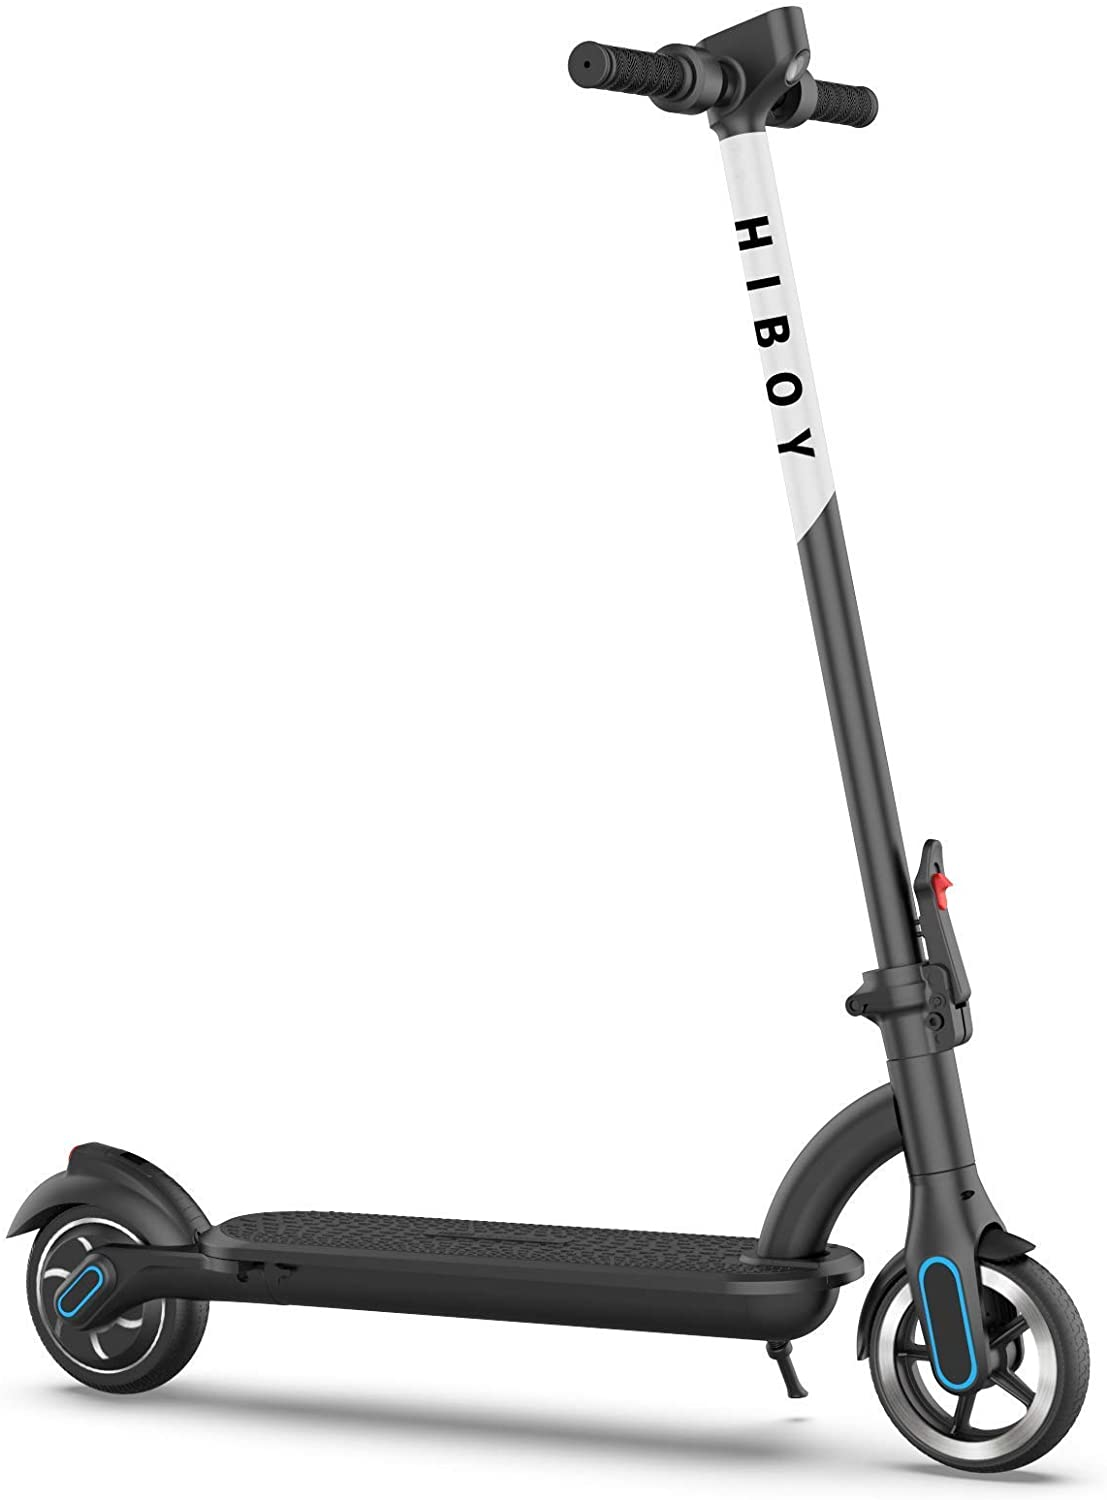 Hiboy Electric Scooter